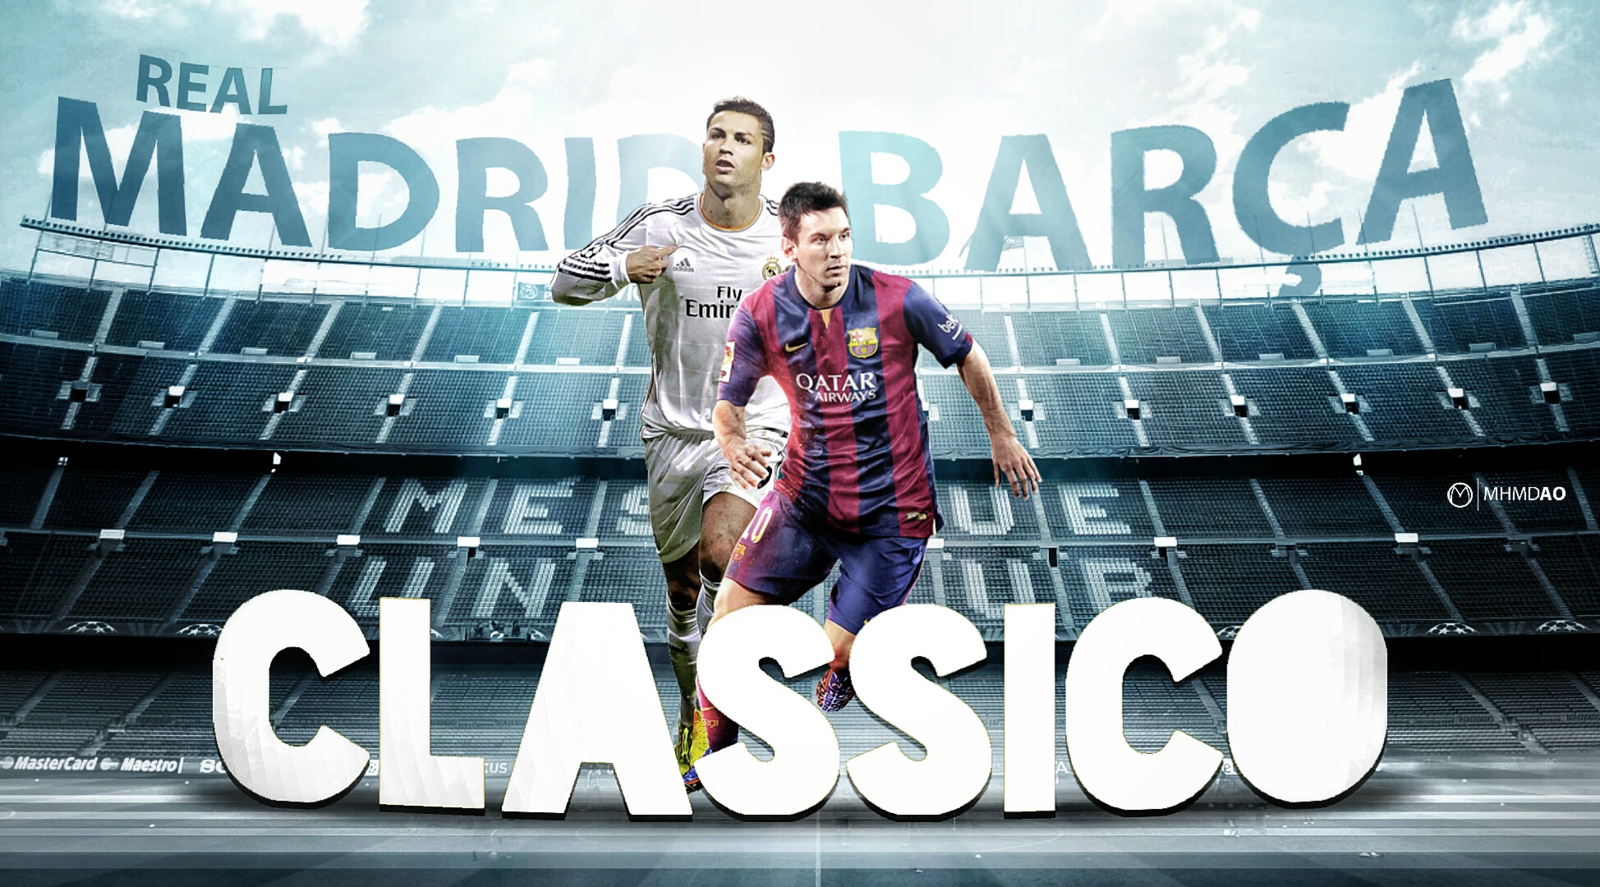 El Clasico Hd Images 5 El Clasico Hd Images Pinterest Hd Images